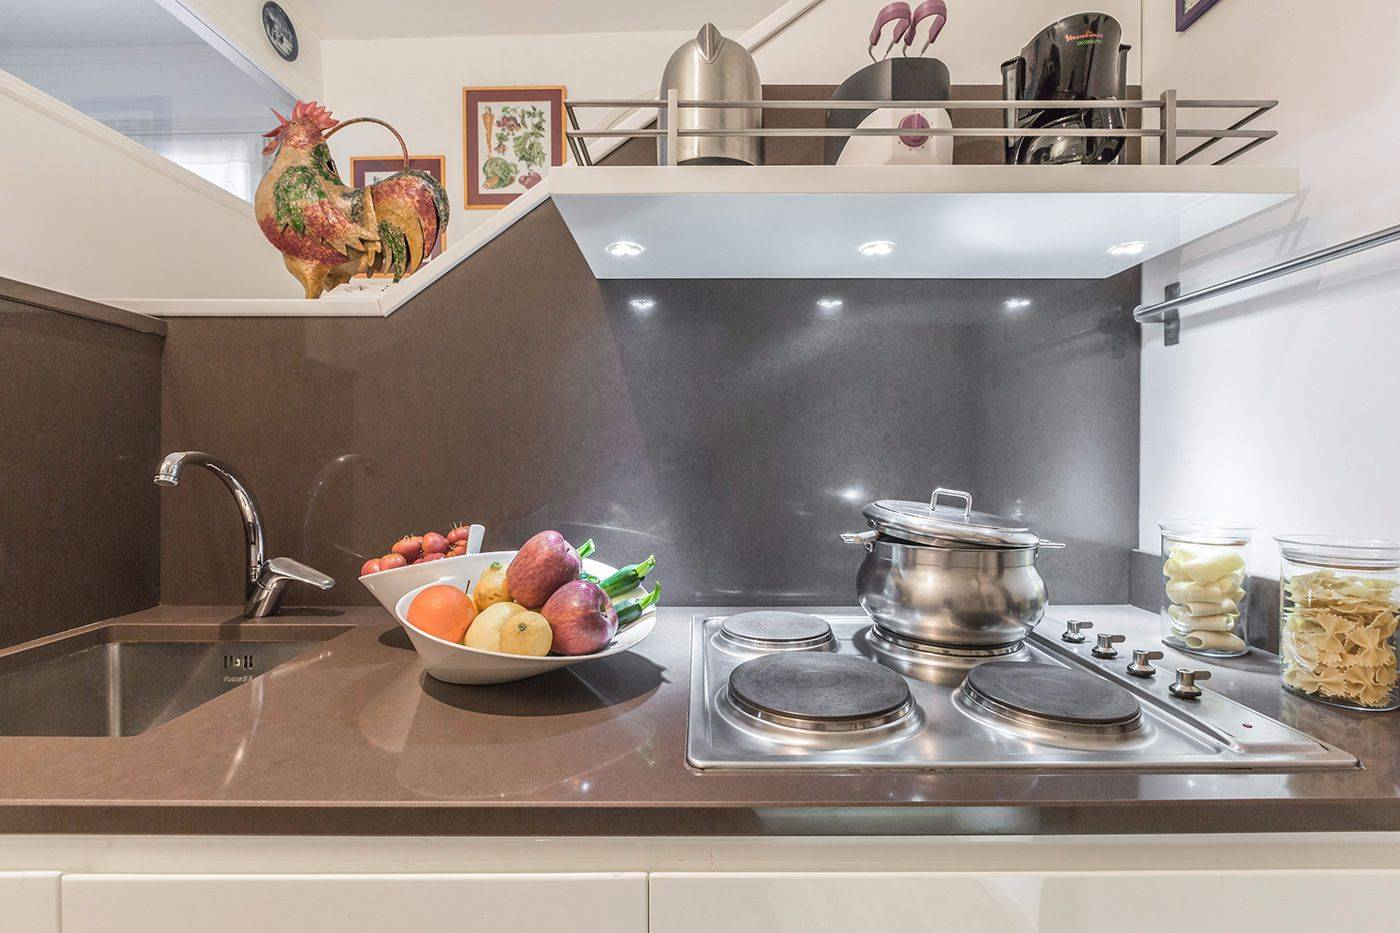 brend new and well equipped kitchen